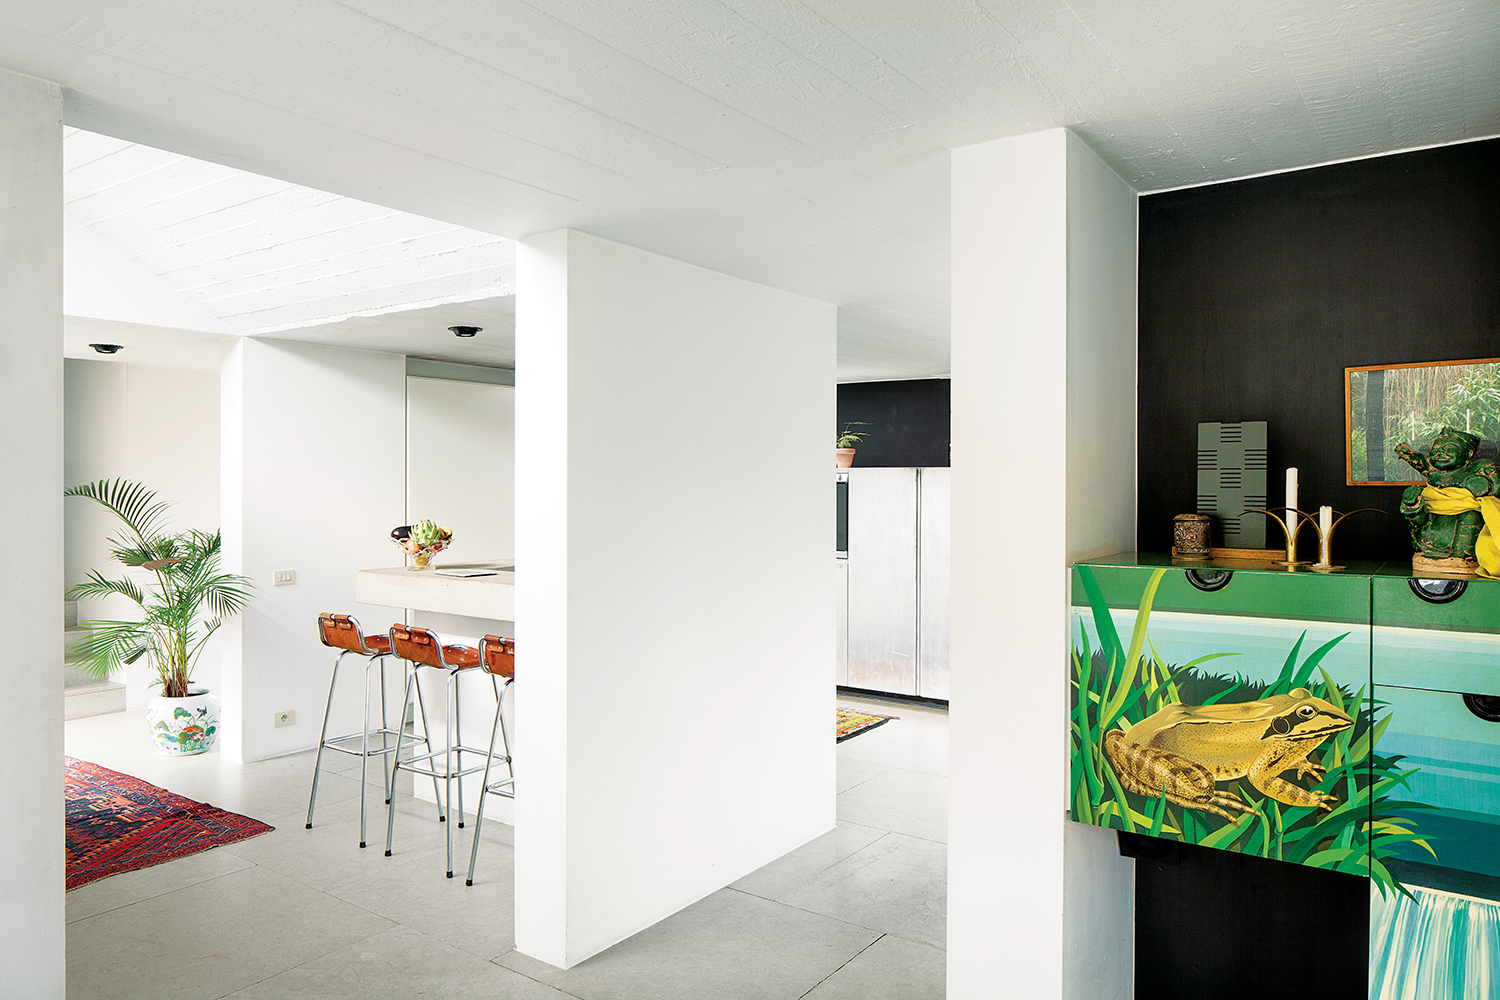 an original painted cupboard remains in the open black and white space of the renovated dining room